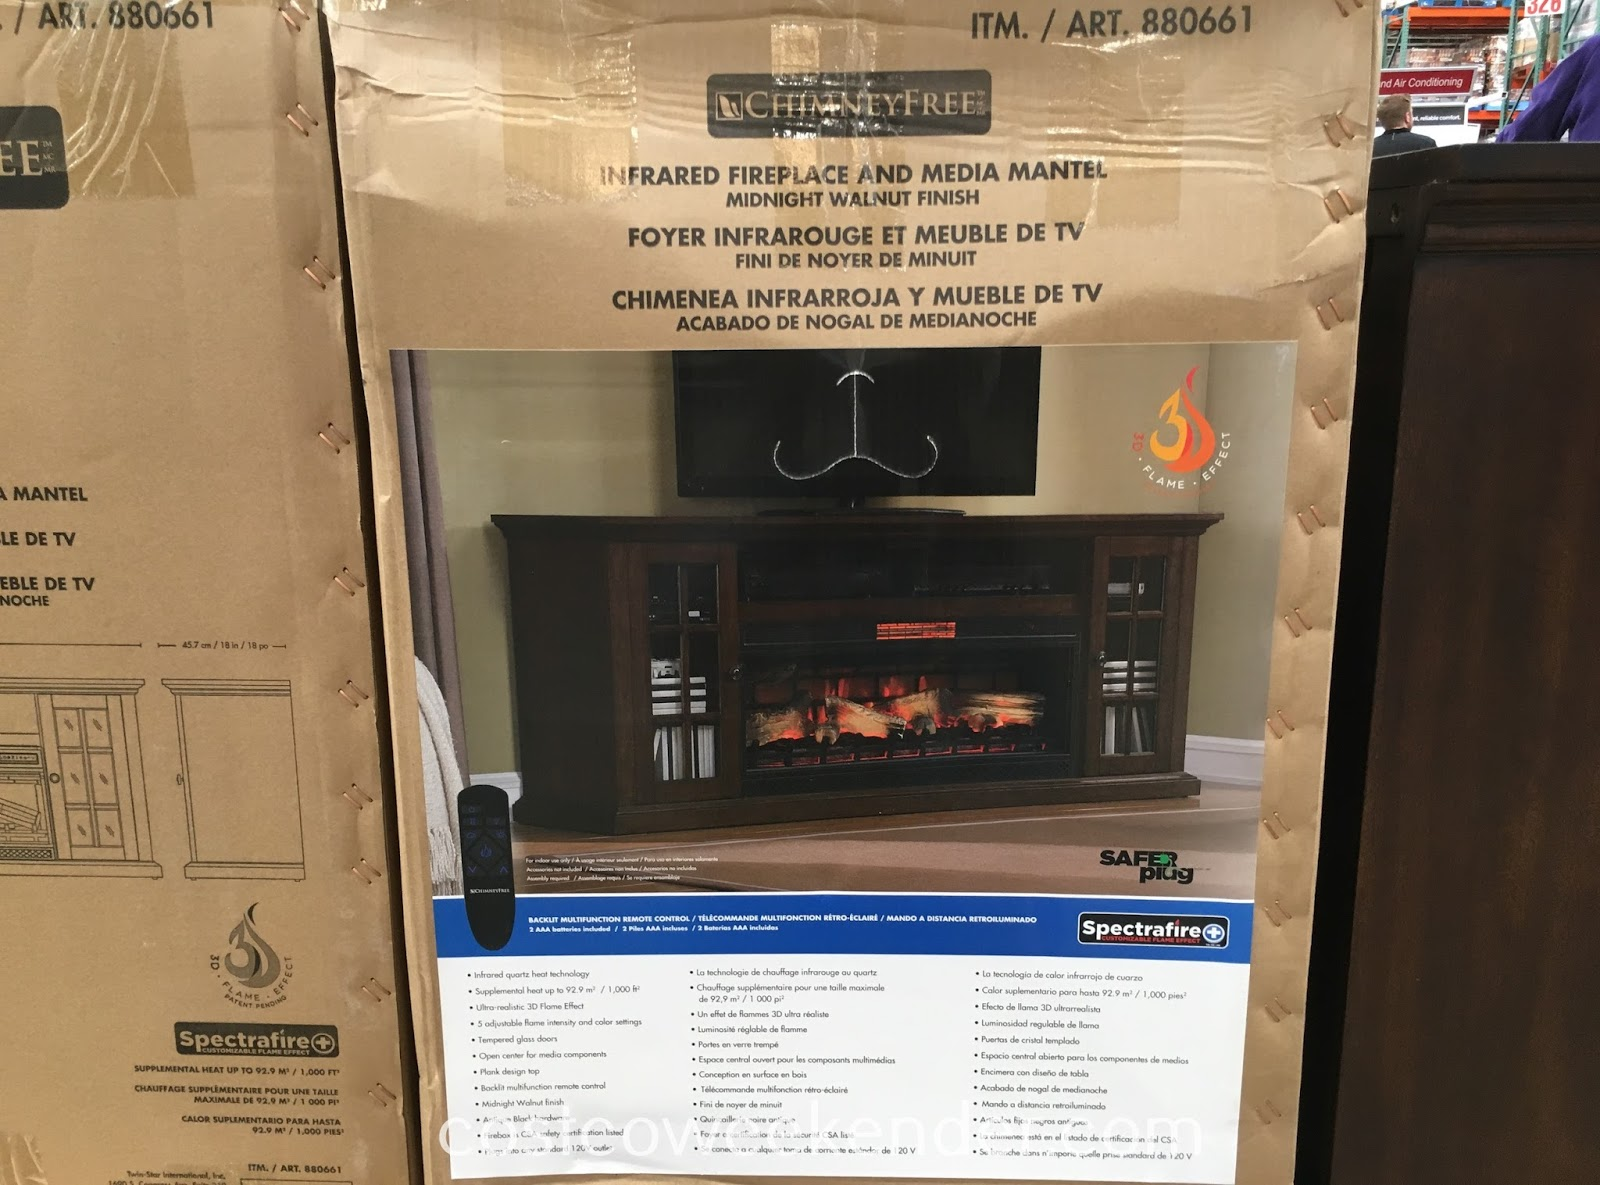 Costco 880661 - Tresanti Infrared Fireplace and Media Console - The dual purpose heater and entertainment system